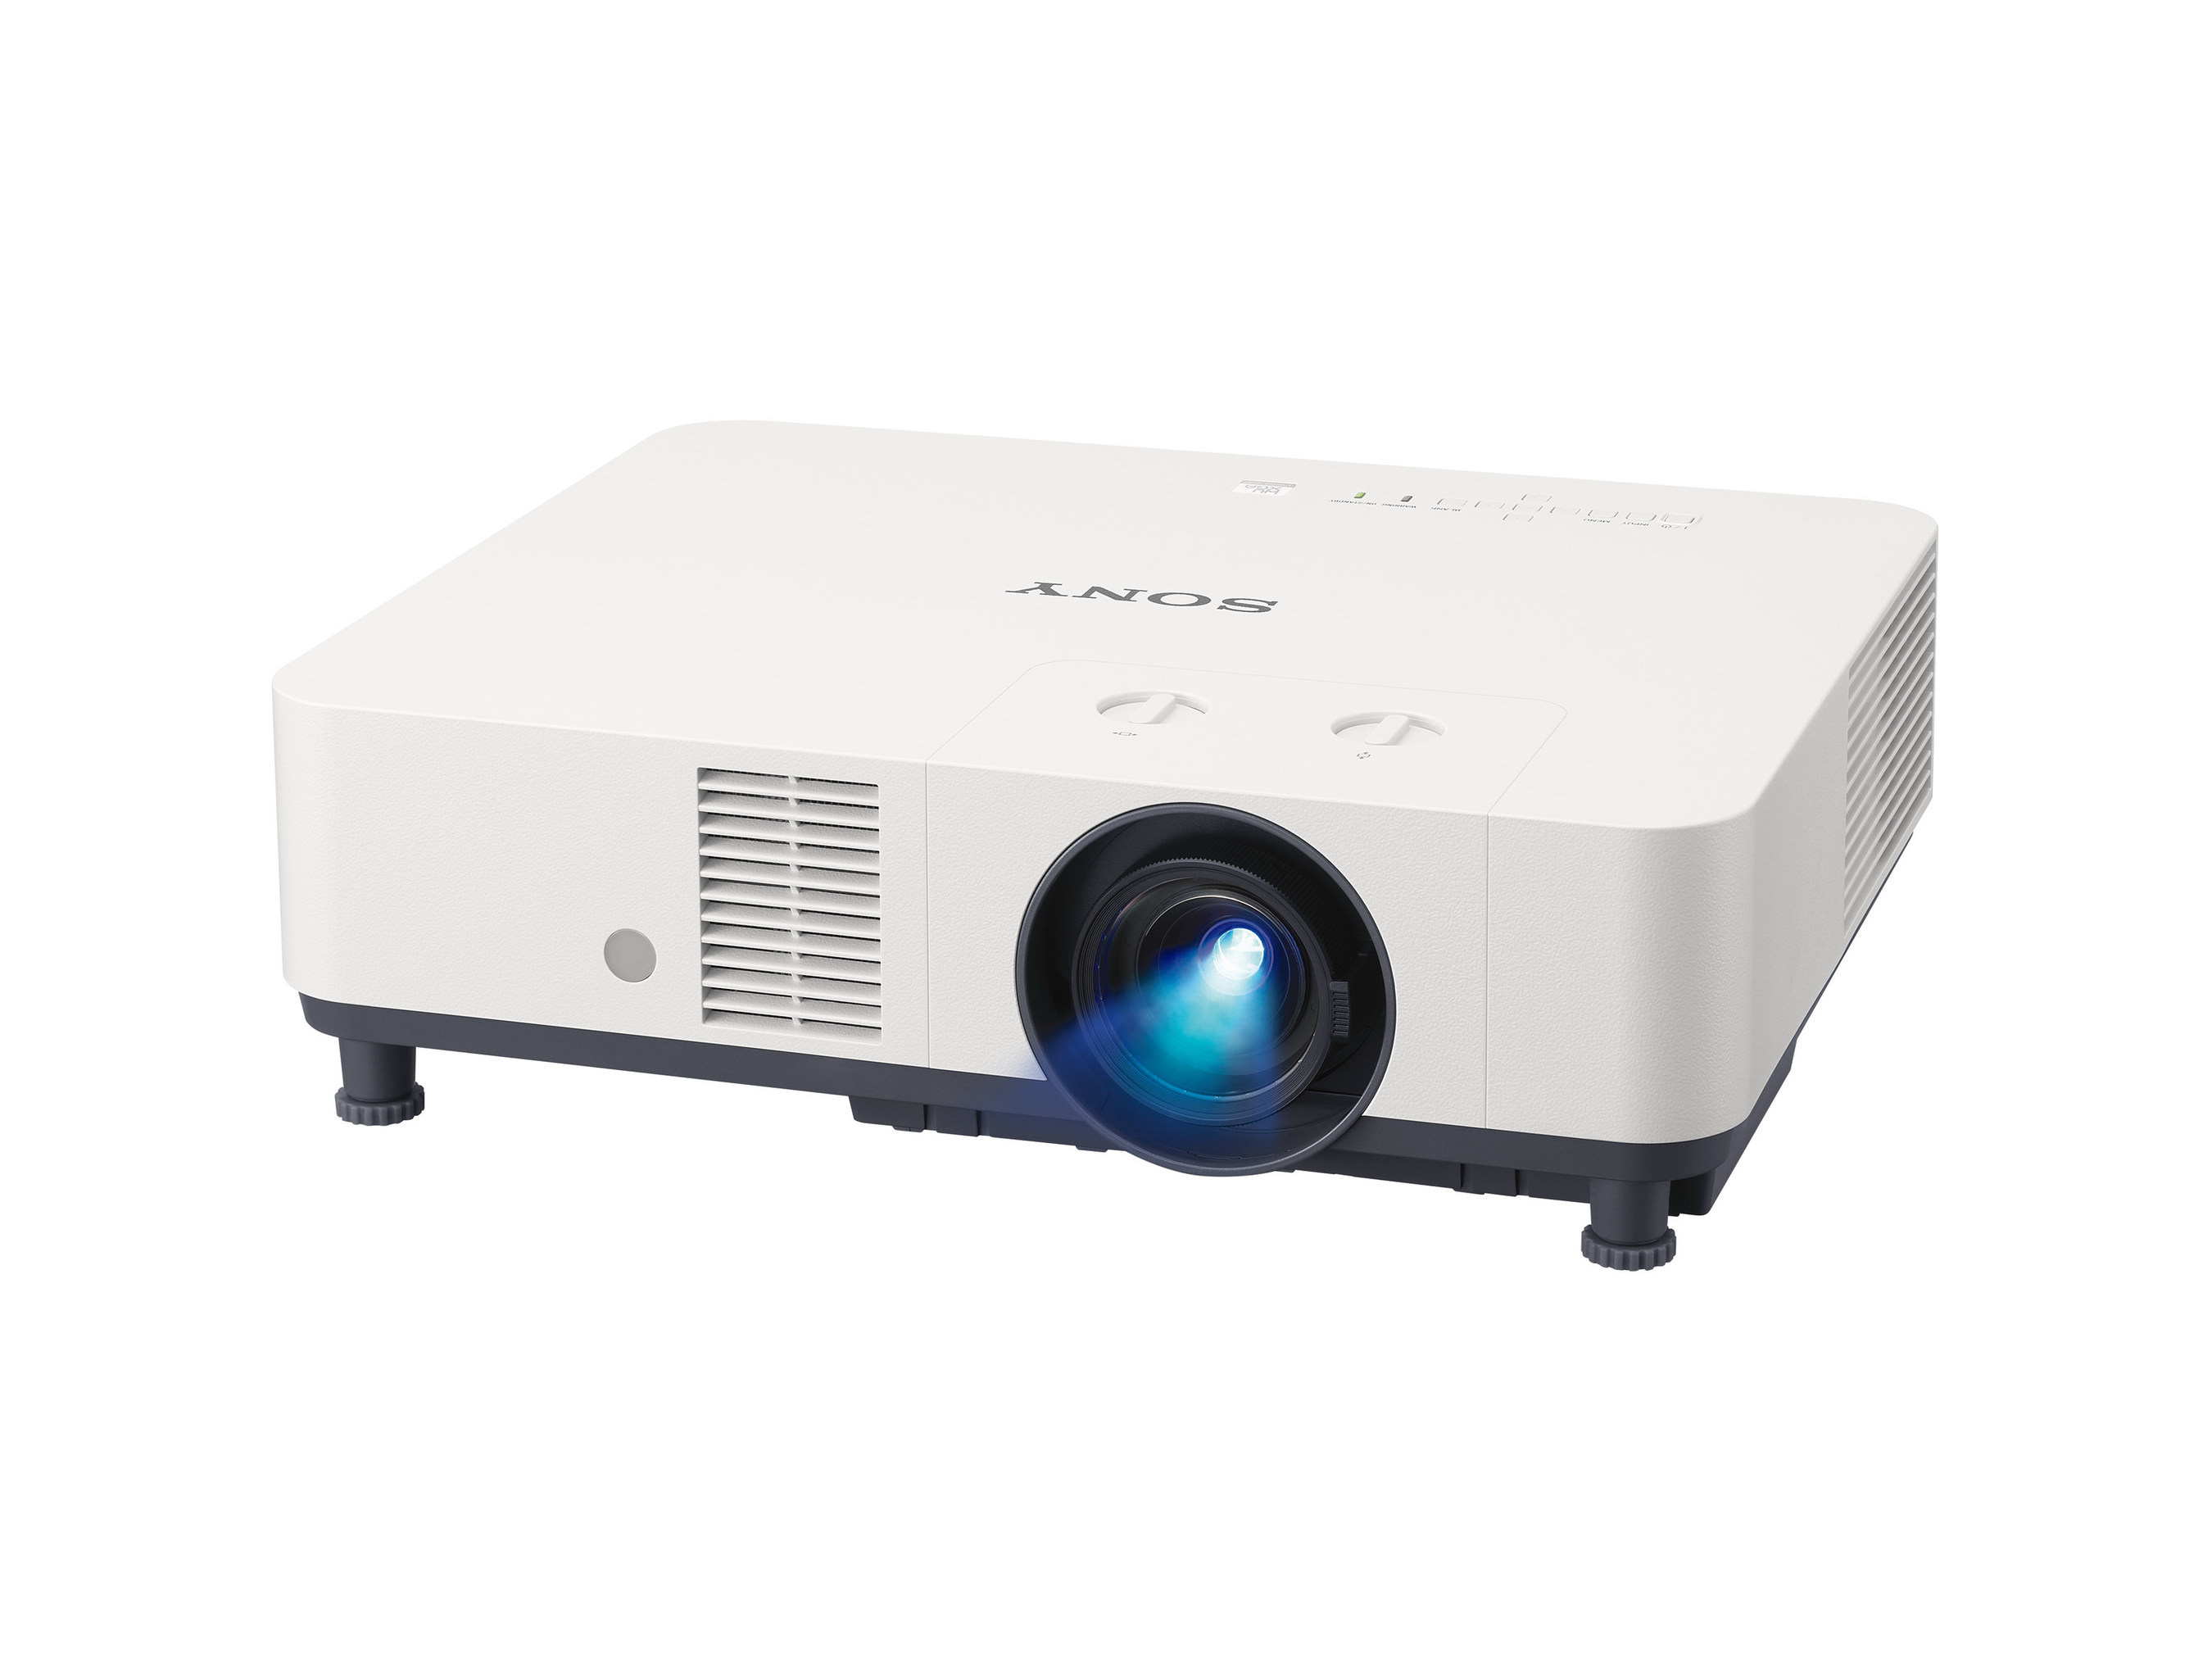 Both new projectors feature Sony's Reality Creation image enhancement technology